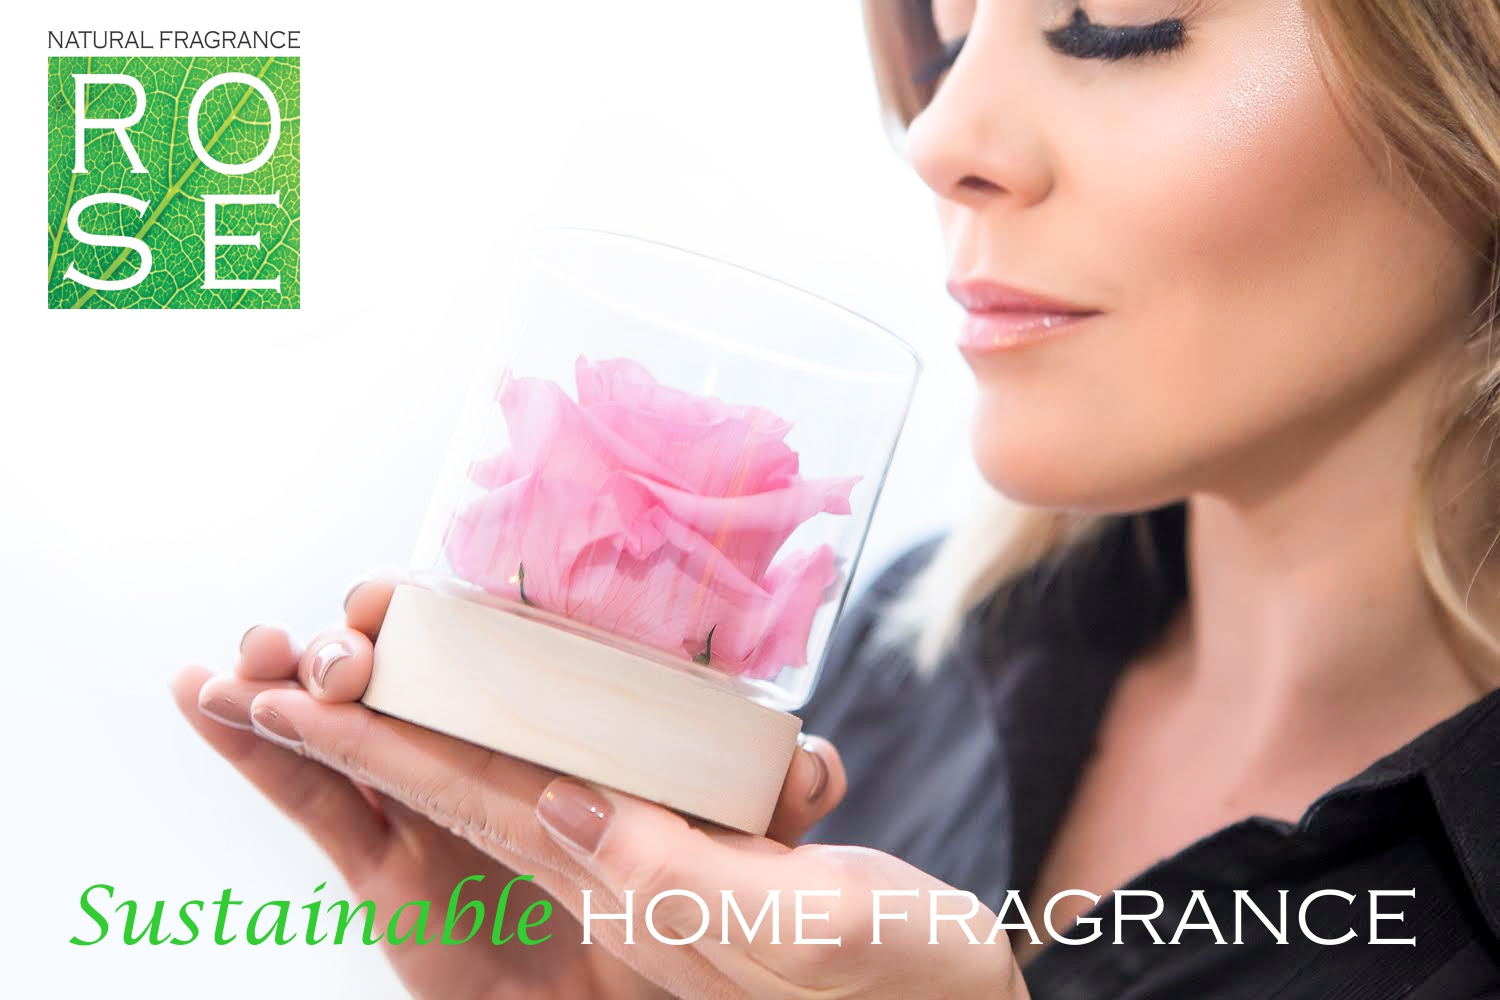 Natural Fragrance Rose Is The Perfect Gift